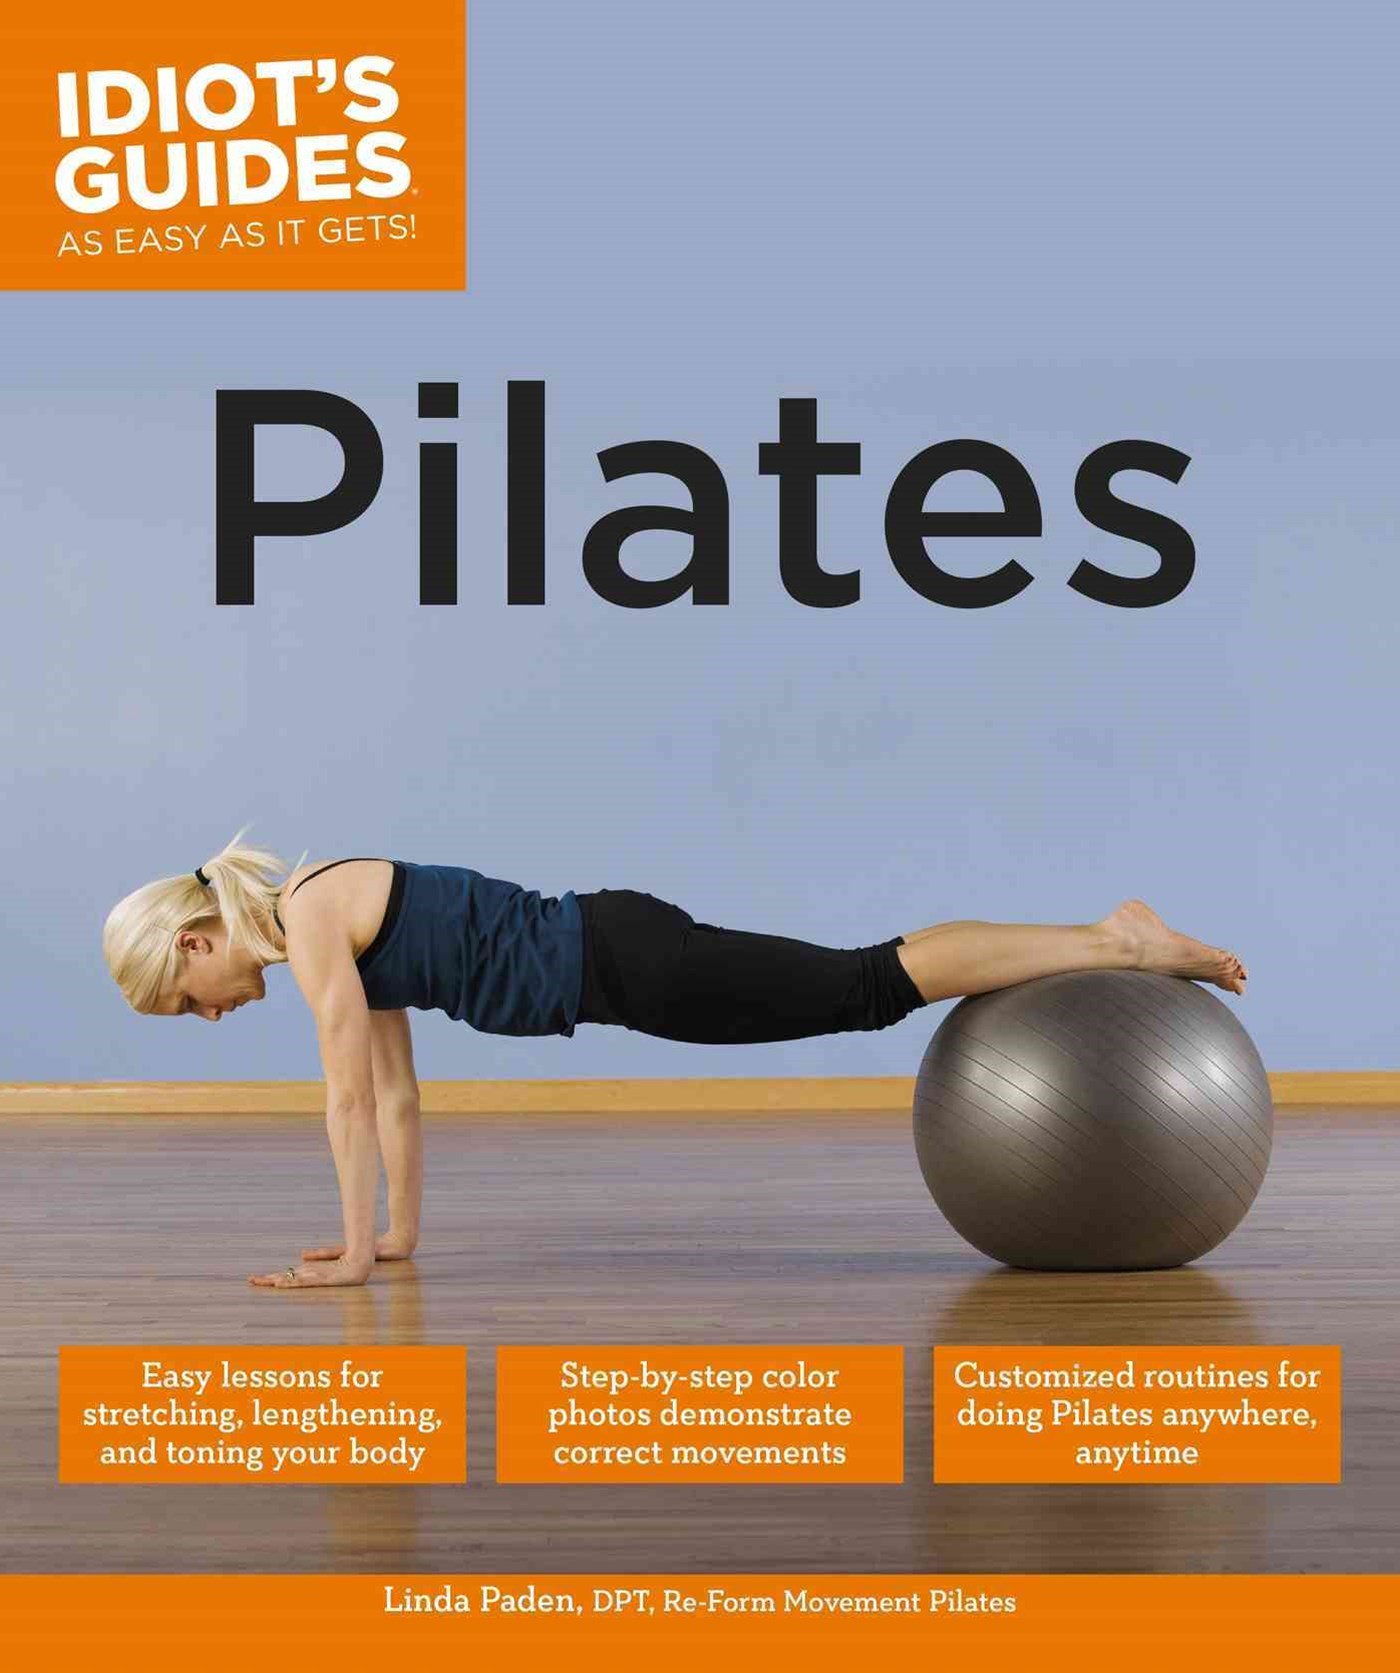 Idiot's Guides - Pilates